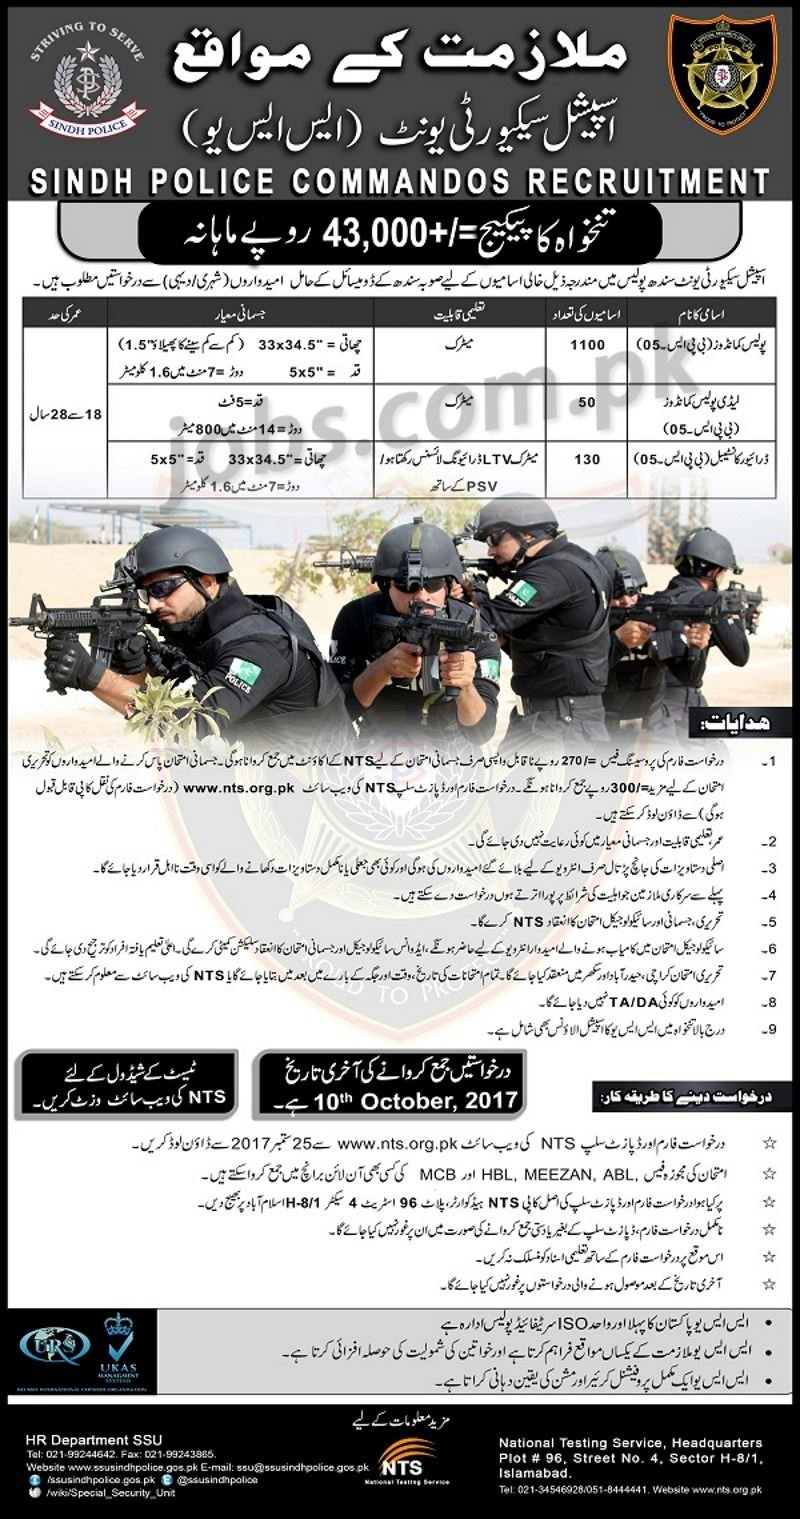 Sindhpolice-jobs_AdU Job Application Form Sindh Government on free generic, blank generic, part time, sonic printable, big lots,